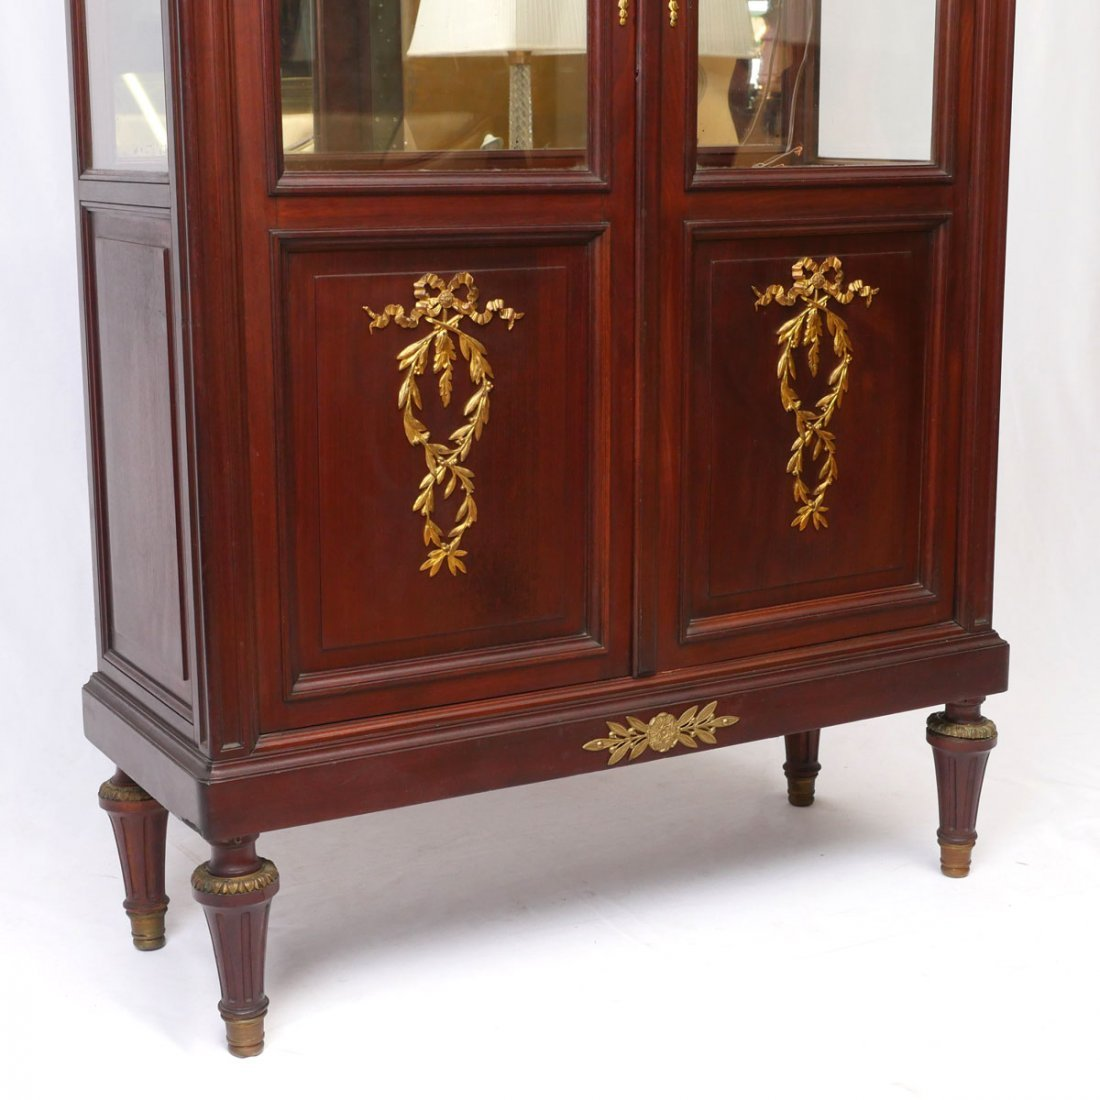 FRENCH EMPIRE STYLE DISPLAY CABINET - 3